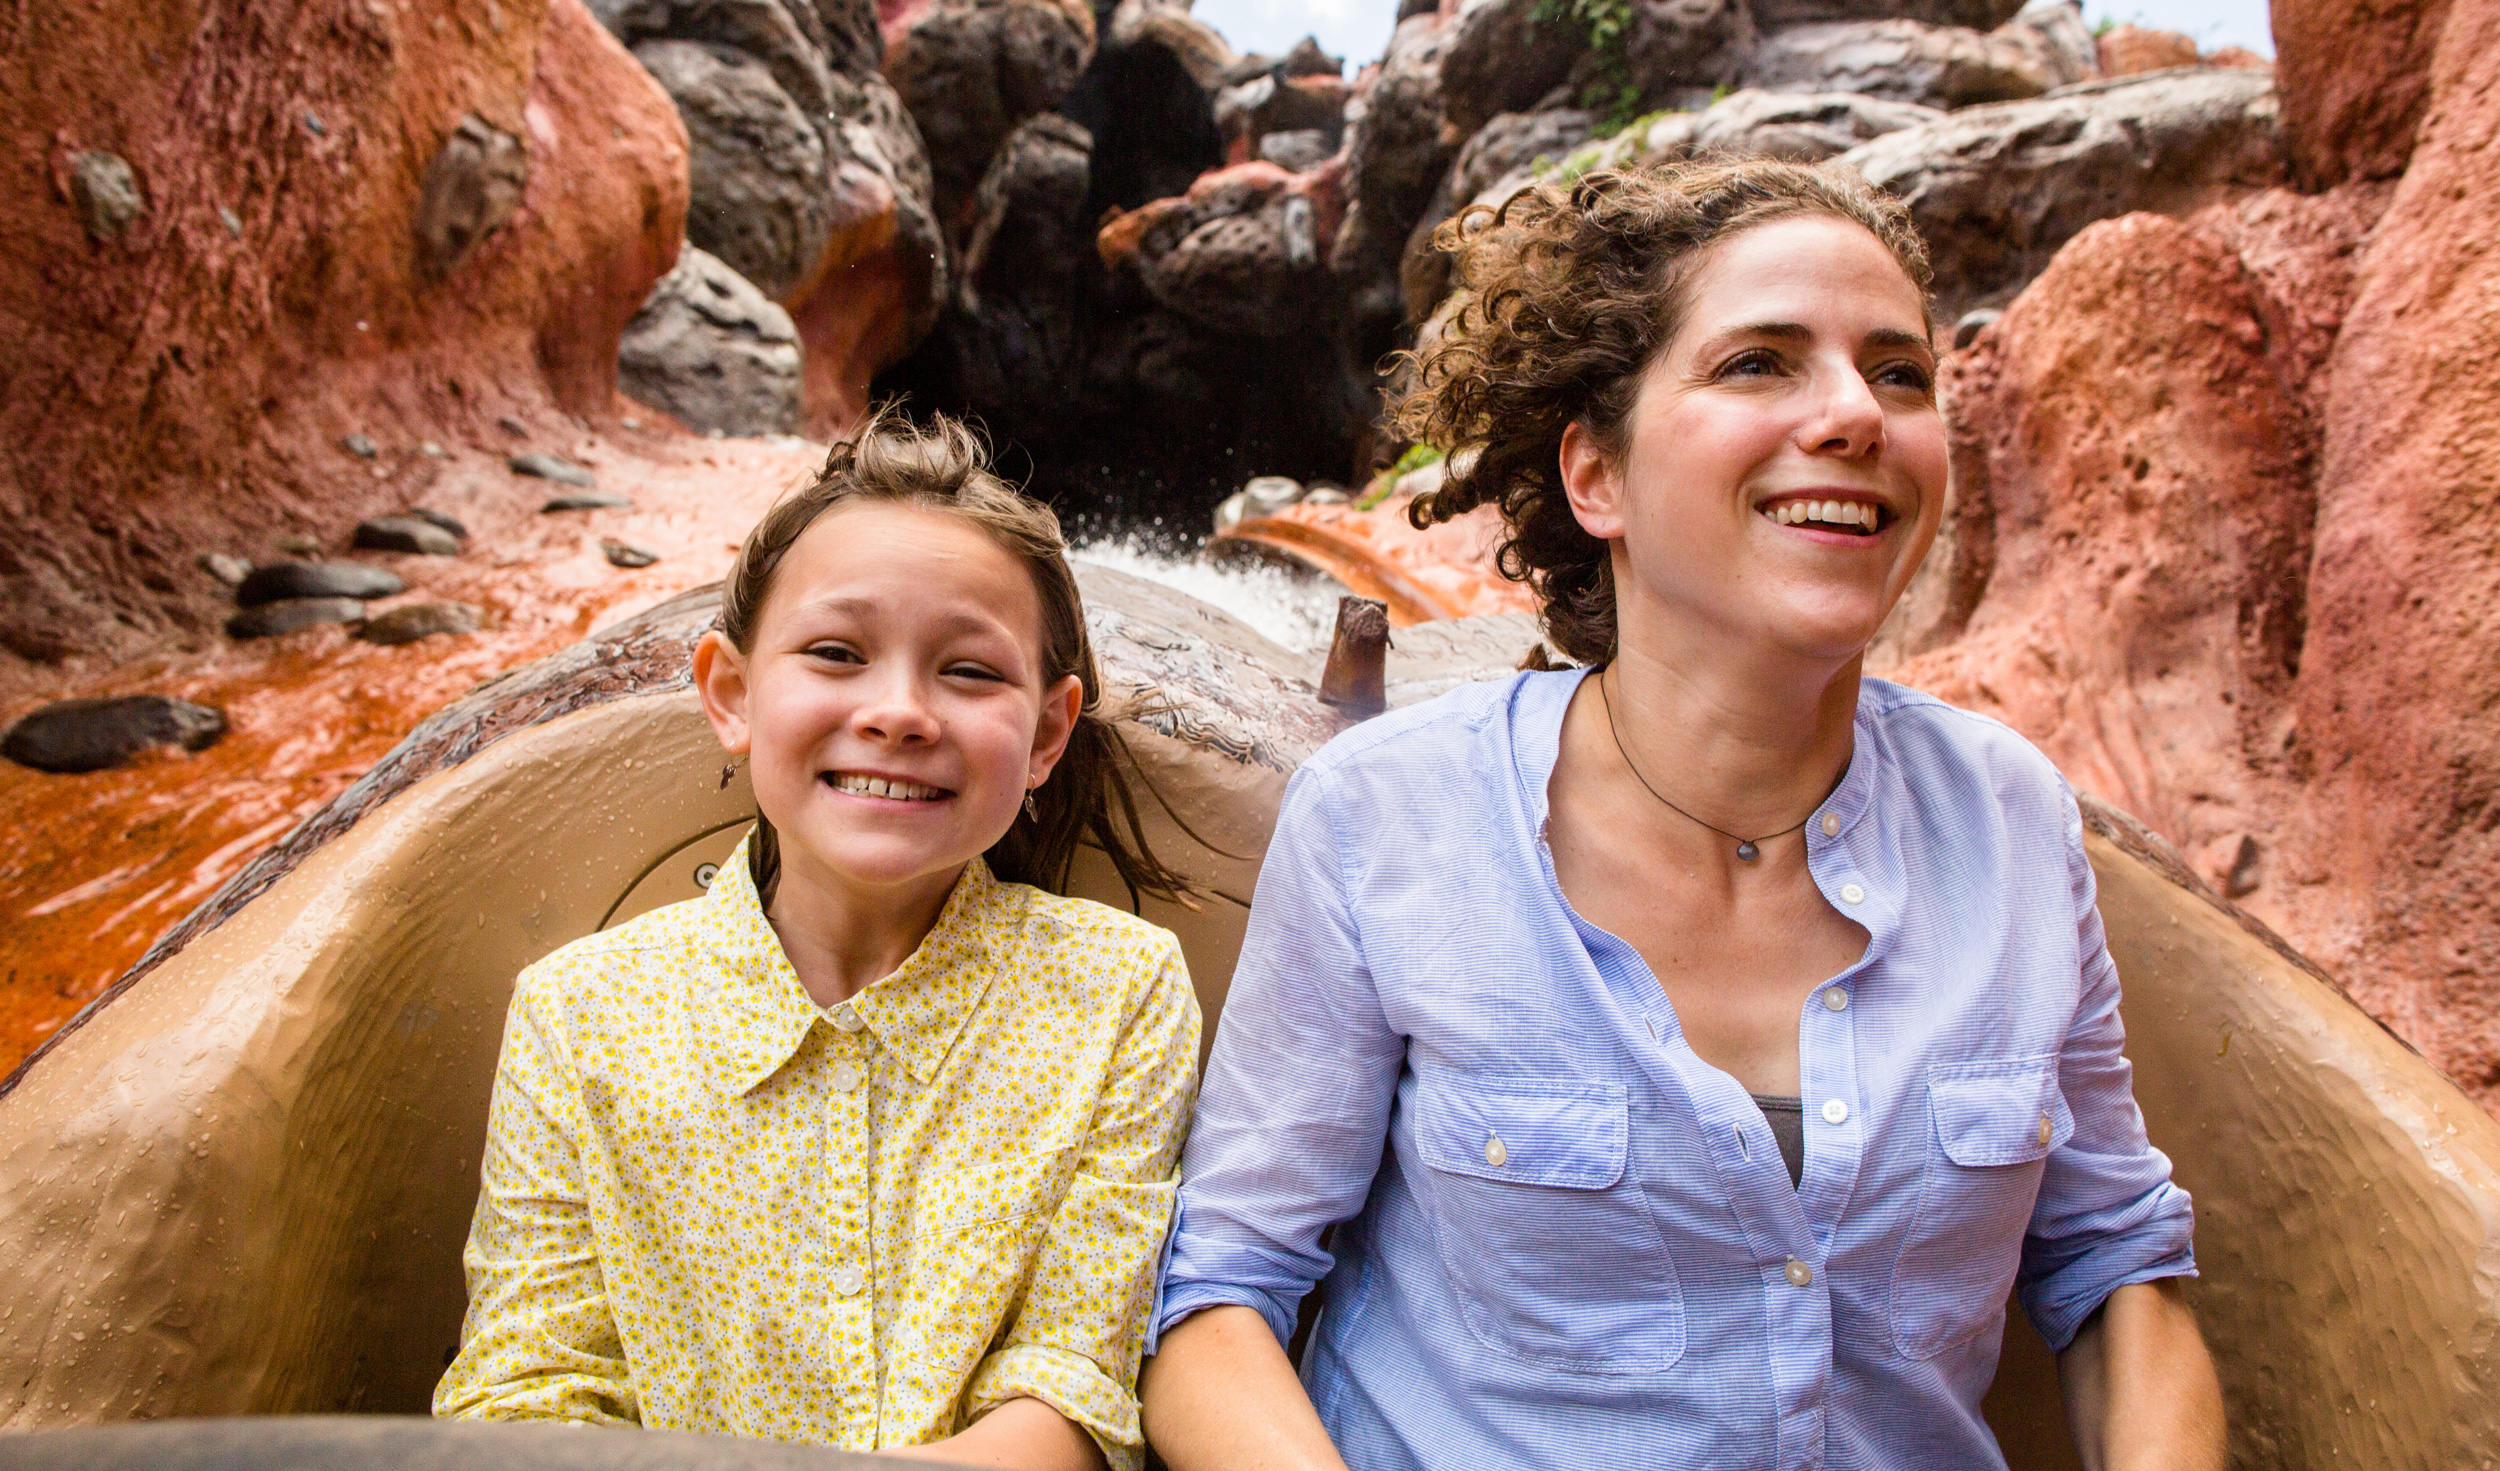 A mother and child smile while riding in a hollowed-out log on Splash Mountain at Magic Kingdom park